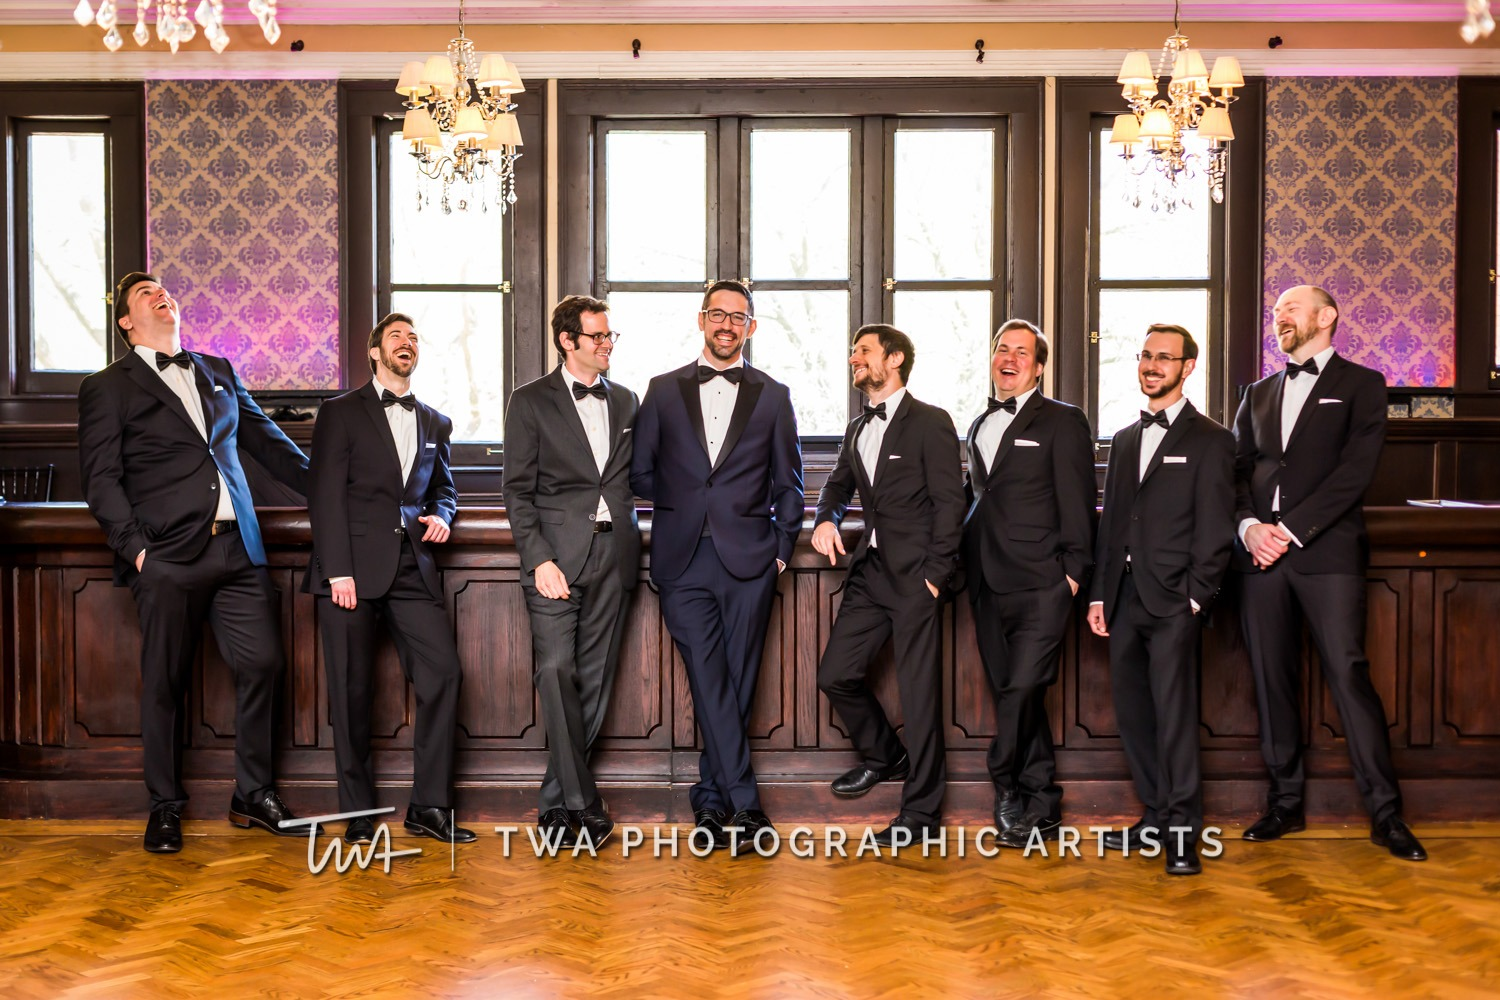 Chicago-Wedding-Photographer-TWA-Photographic-Artists-Stan-Mansion_Ityavyar_Oakley_MJ-0048-1